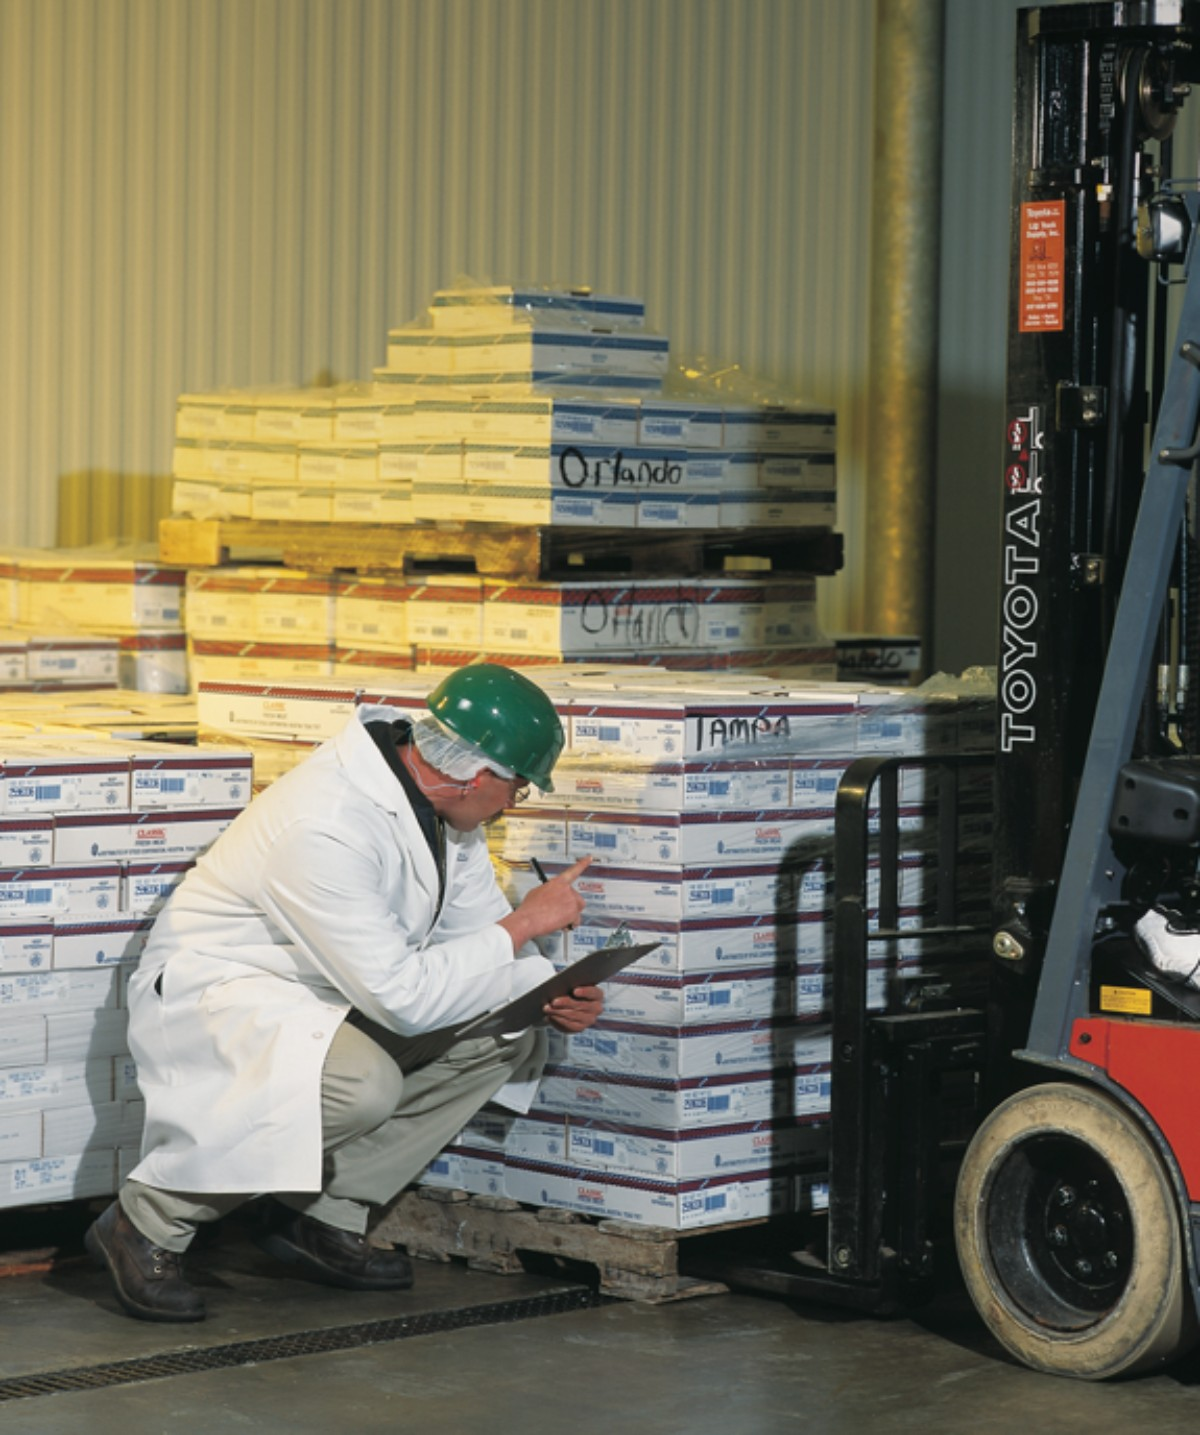 Man inspecting pallets in a warehouse